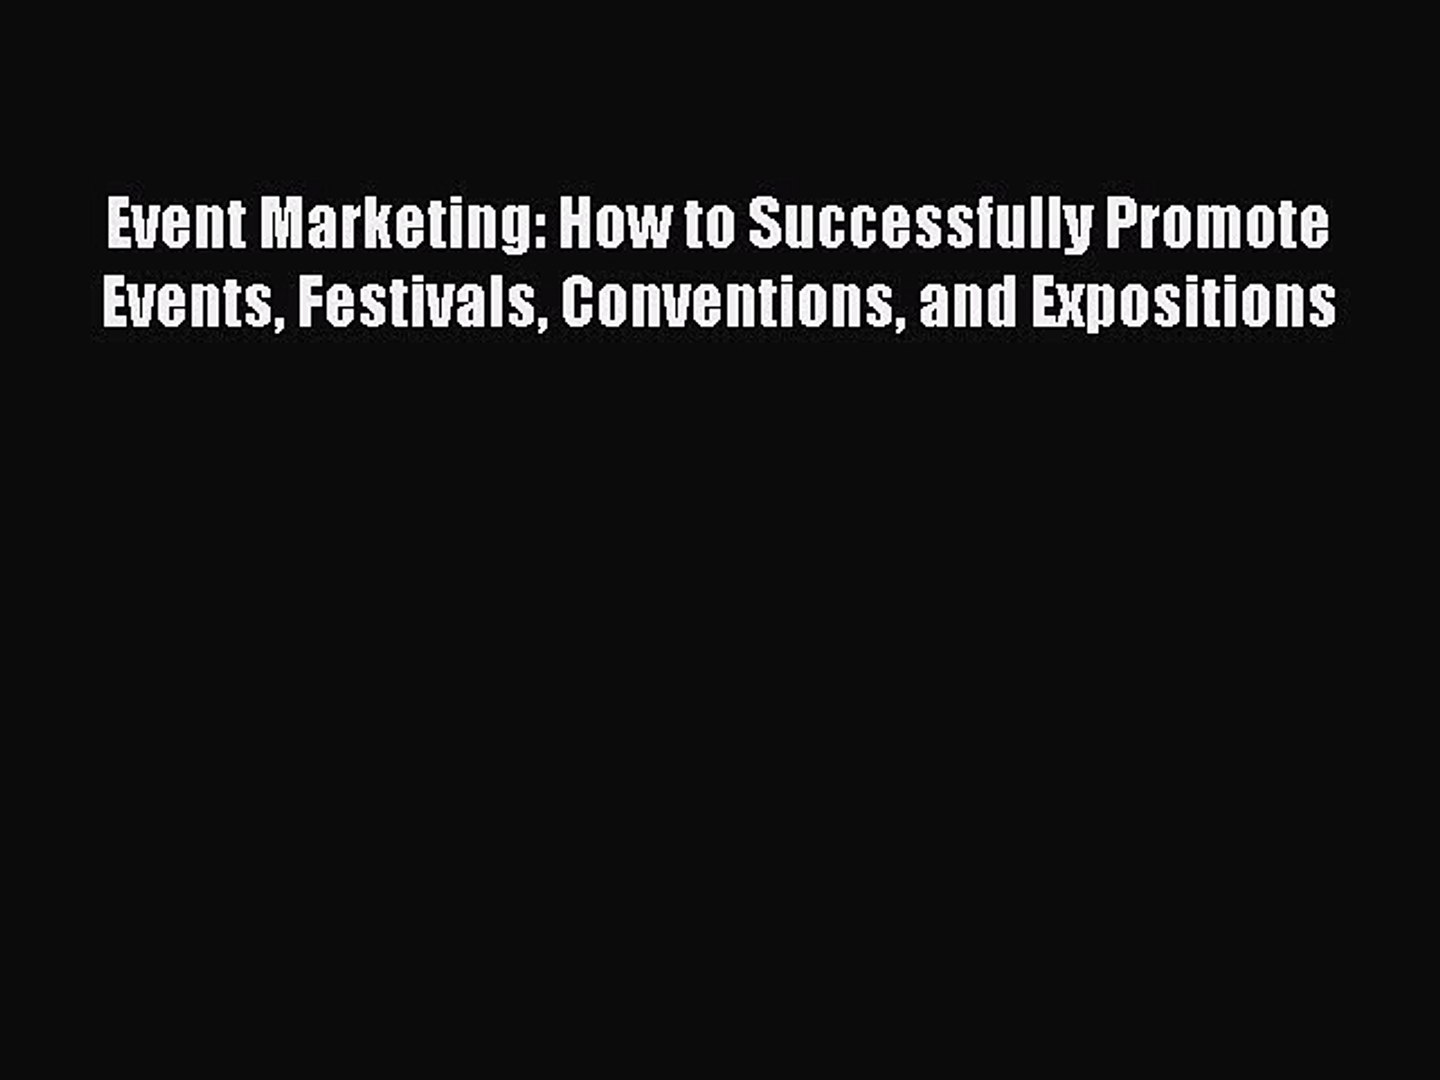 Read Event Marketing: How to Successfully Promote Events Festivals Conventions and Expositions